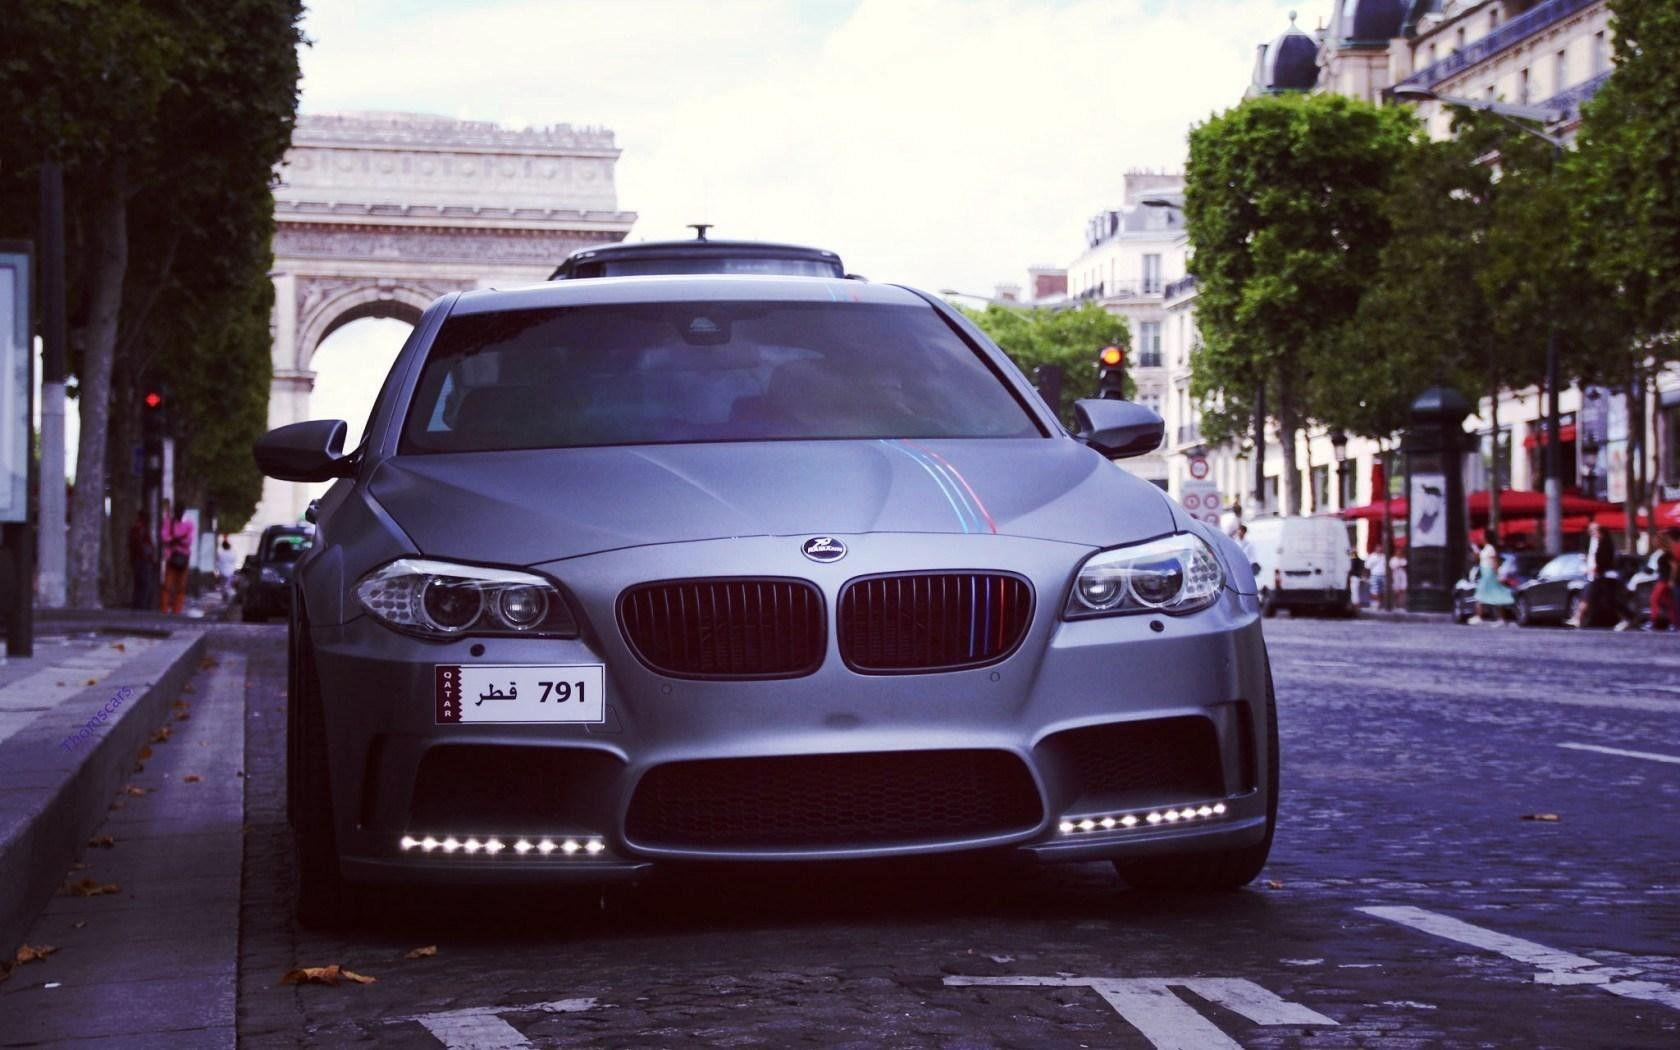 BMW F10 M5 Tuning Car Parking Wallpaper Wallpapers - New HD Wallpapers